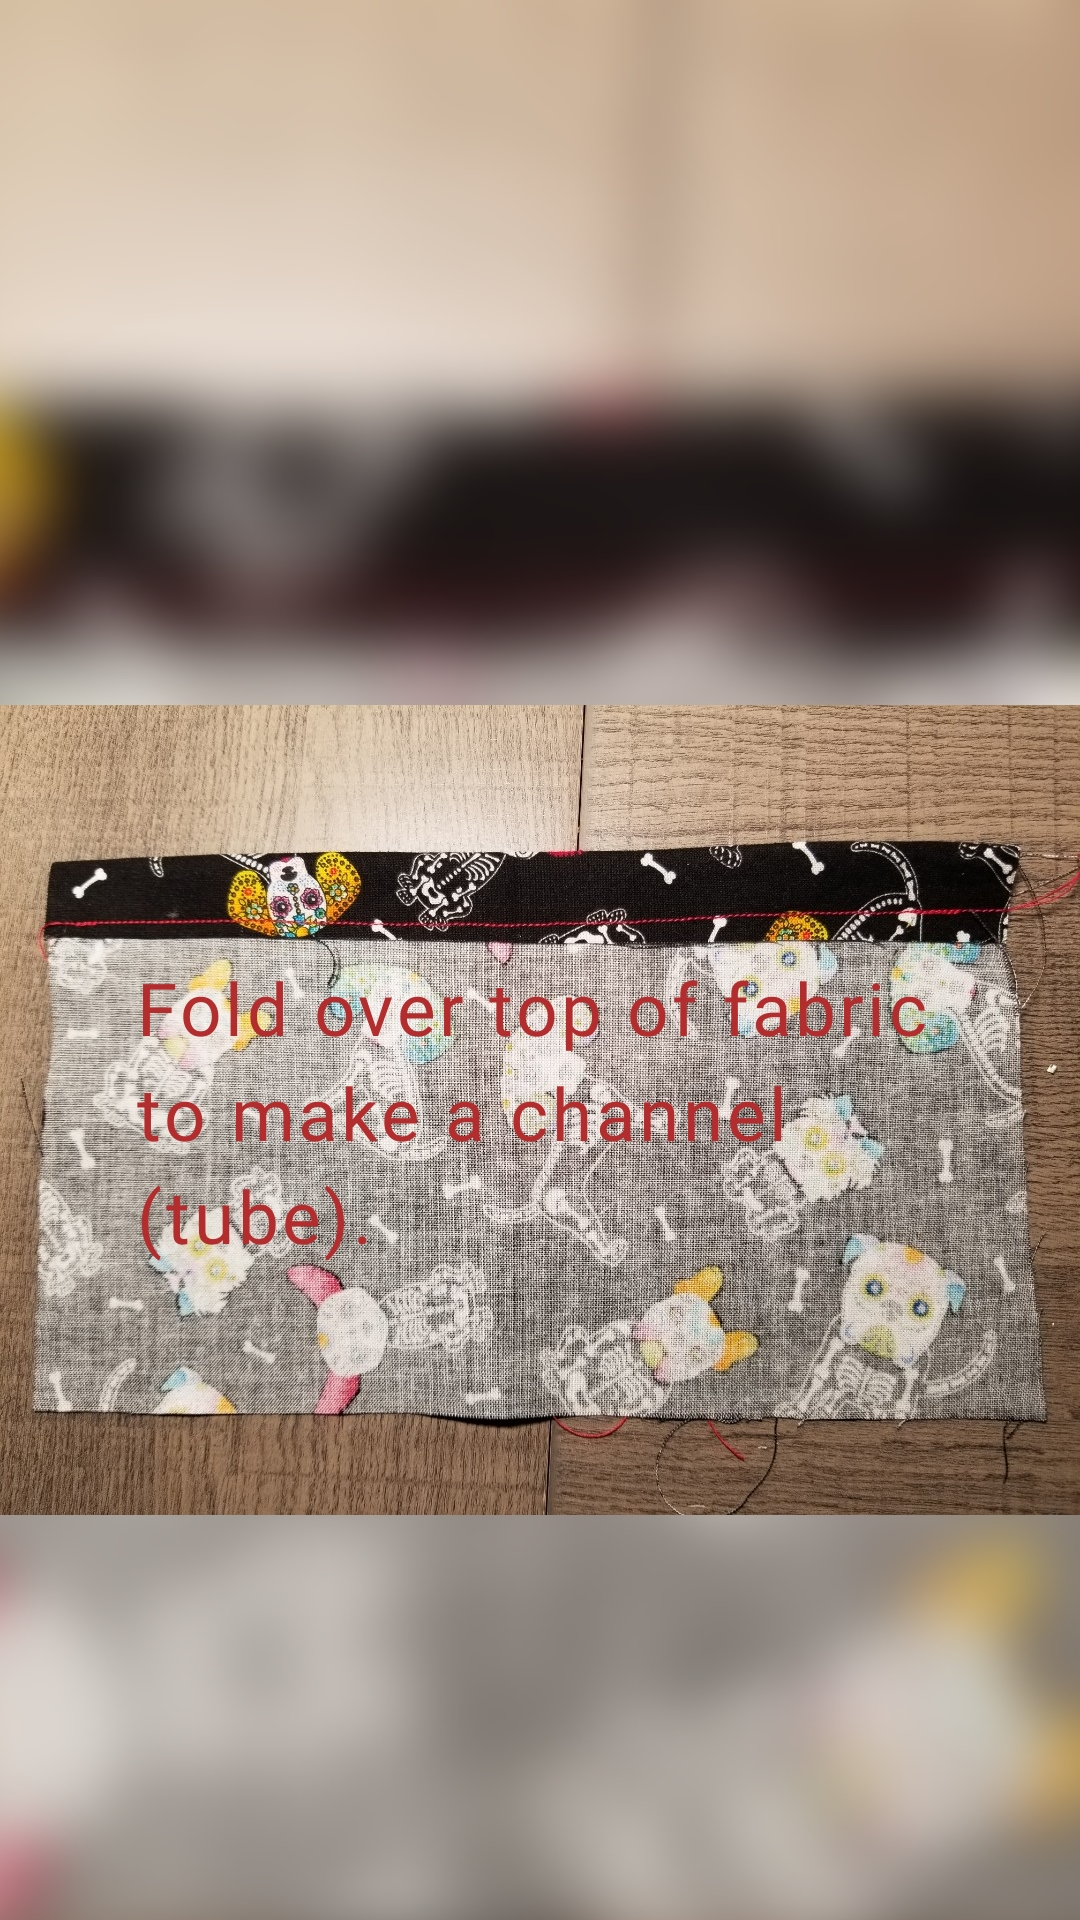 Fold over top of fabric to make a channel (tube).